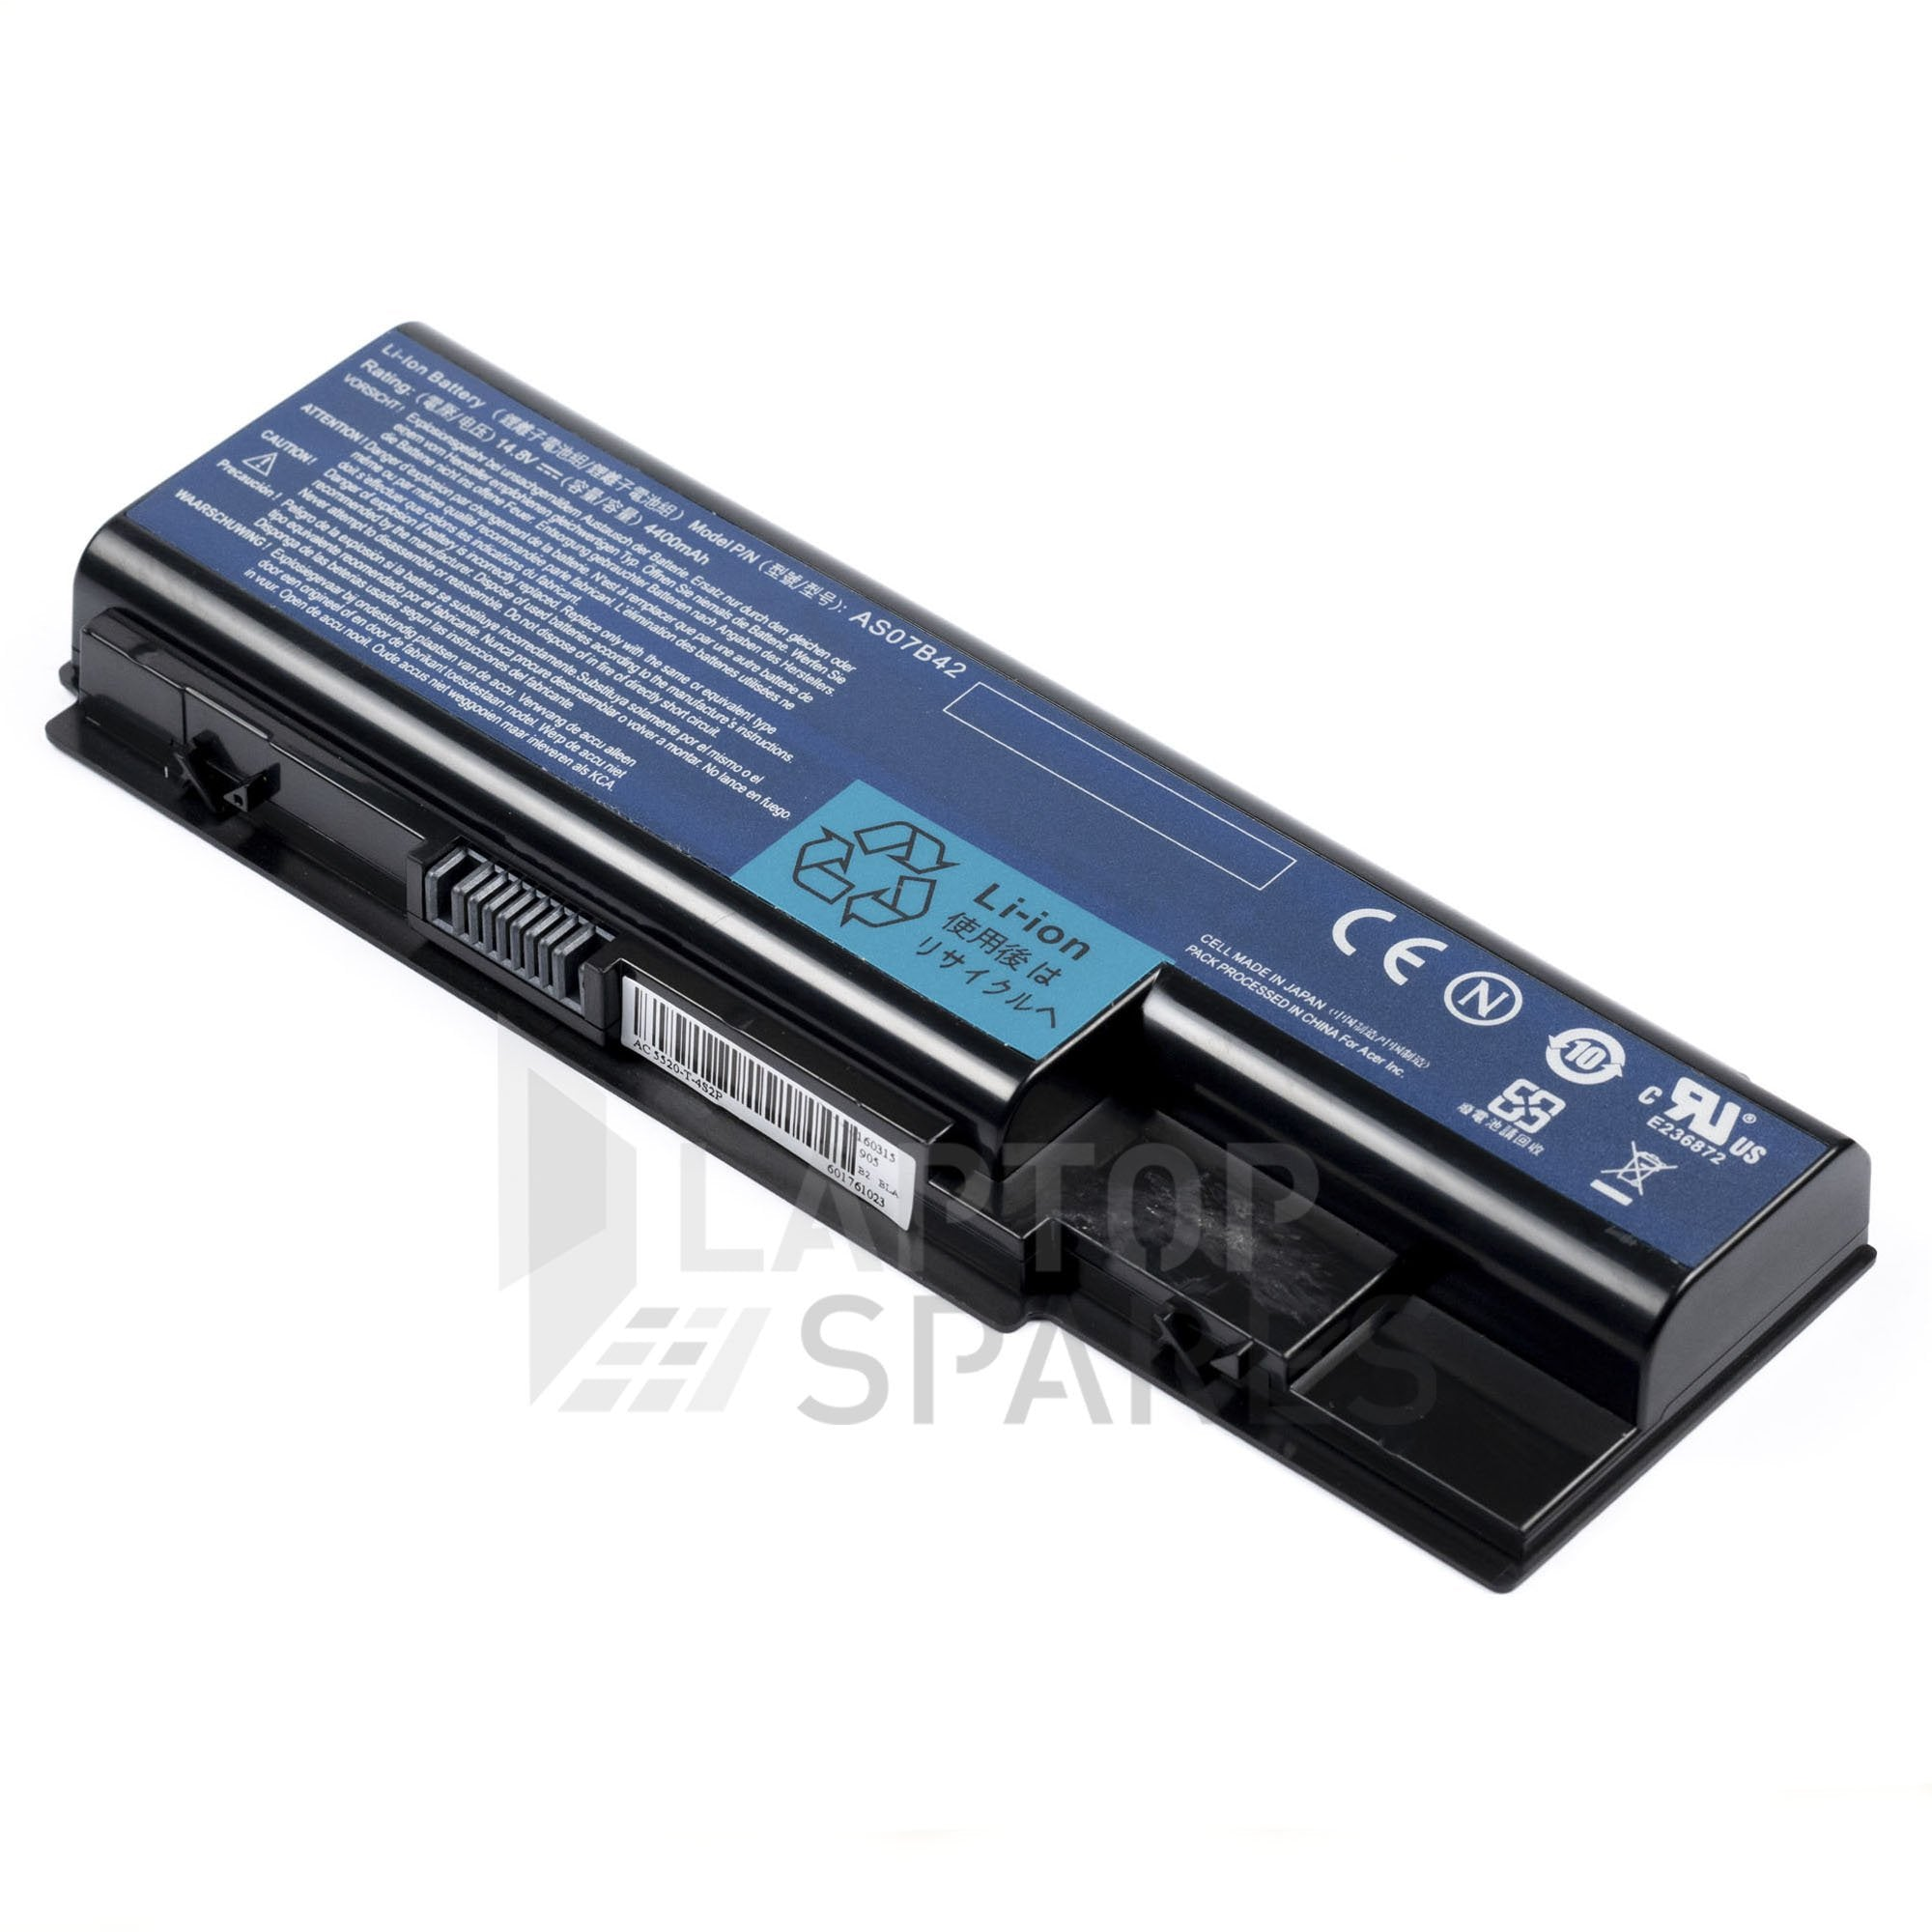 Acer Aspire 5536G 5710G 5710Z 4400mAh 6 Cell Battery